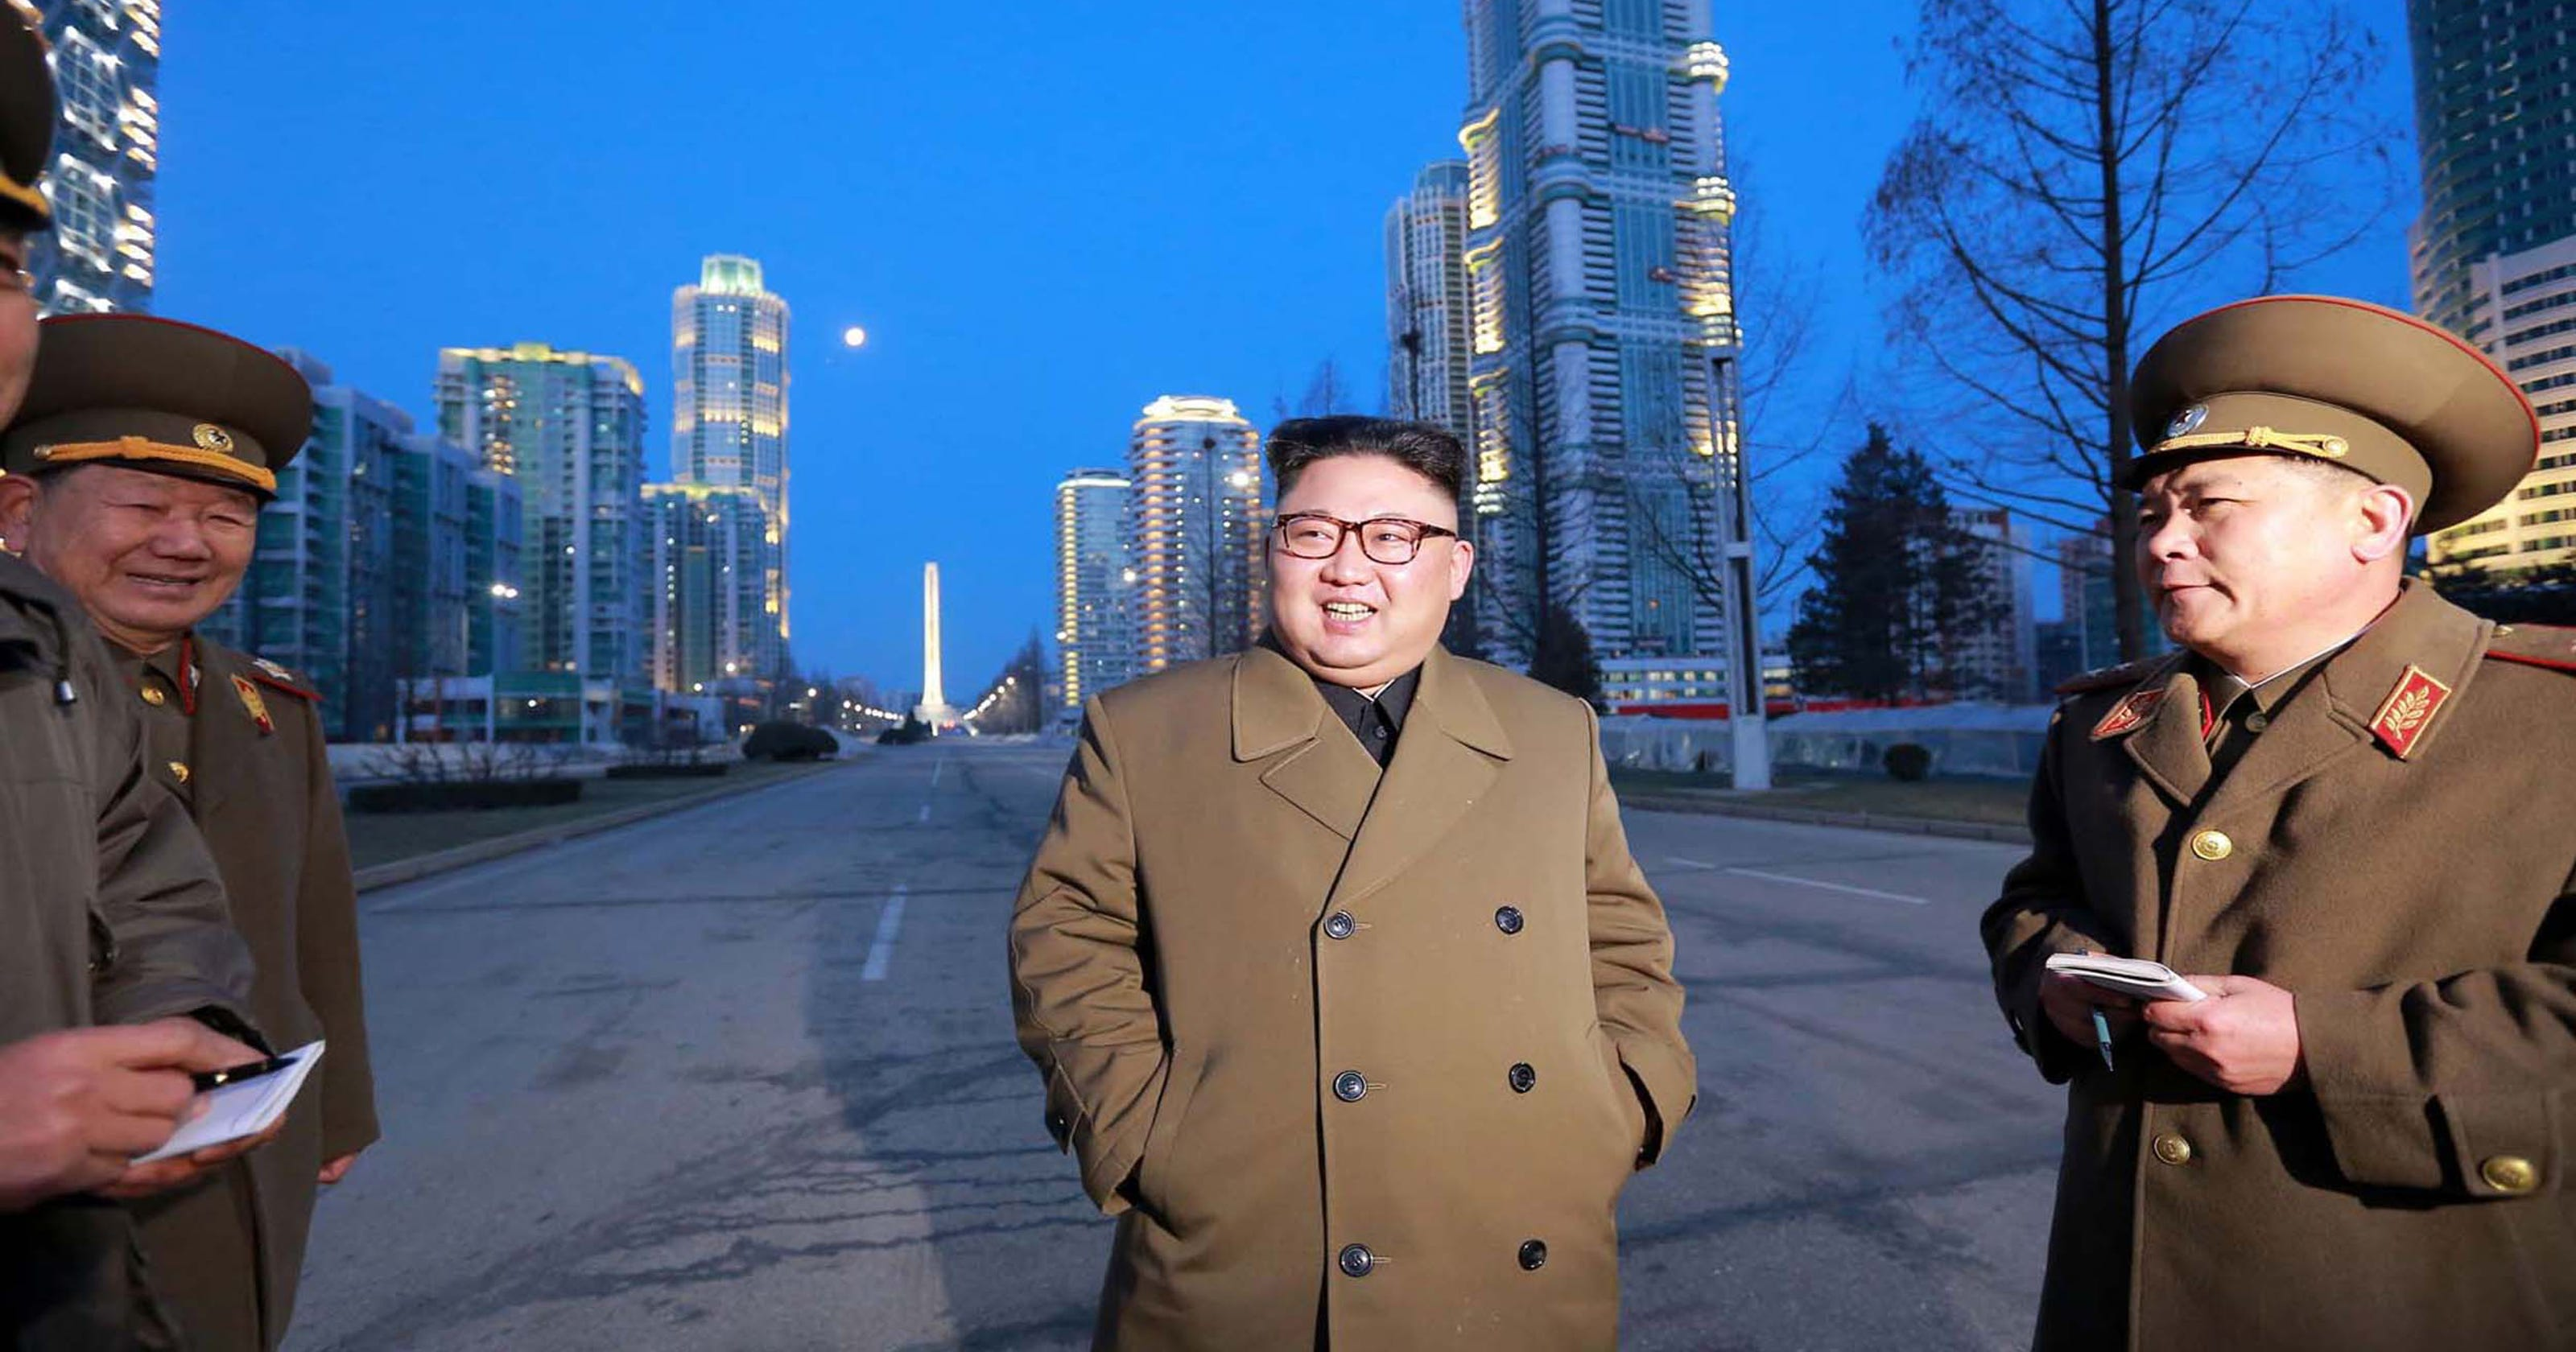 15 fascinating facts about mysterious North Korea 712f4f9392